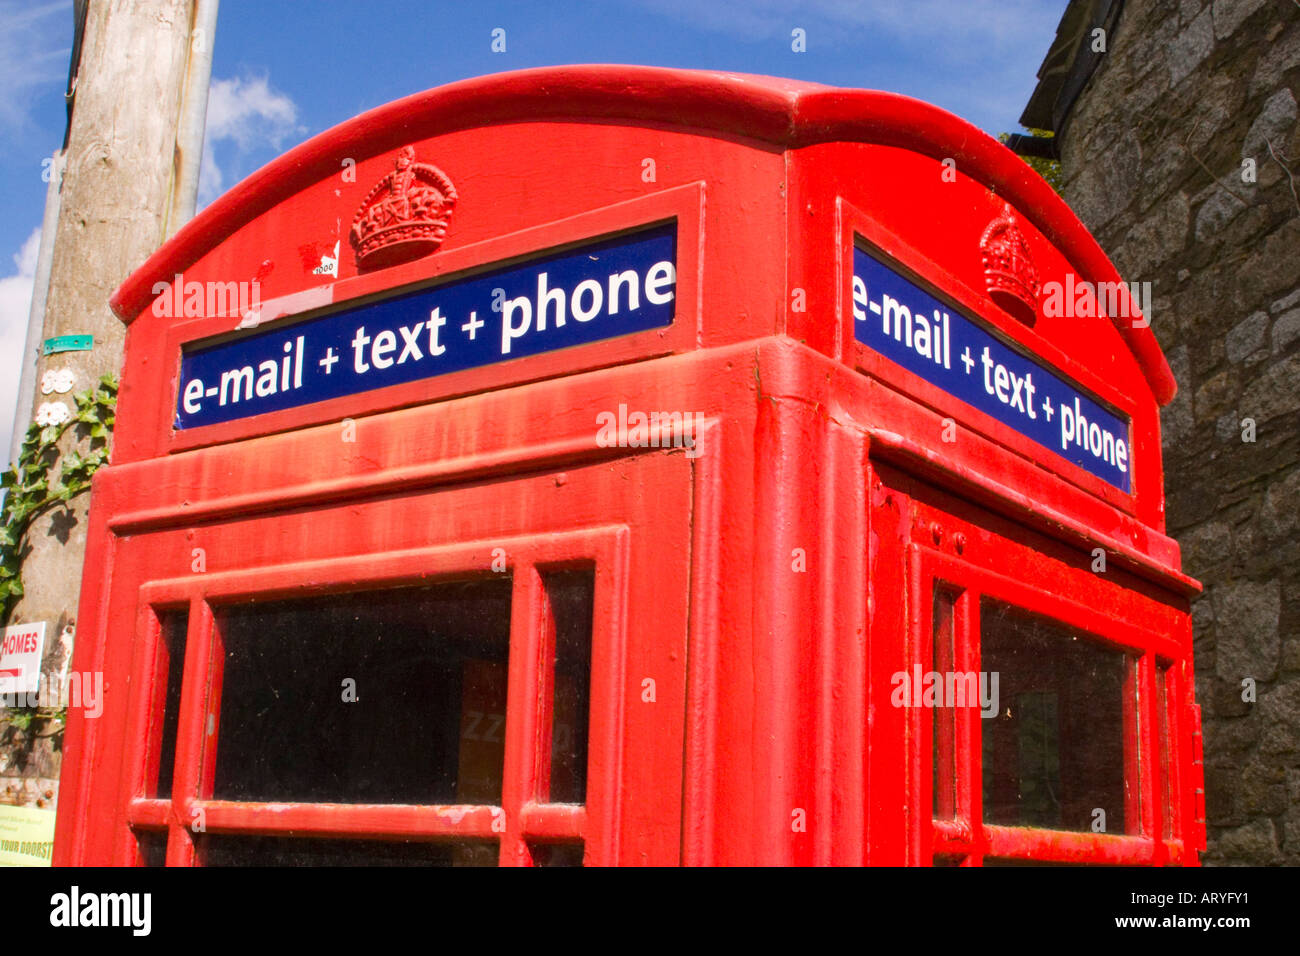 Traditional red telephone box offering email and texting services for the local community in rural  village - Stock Image